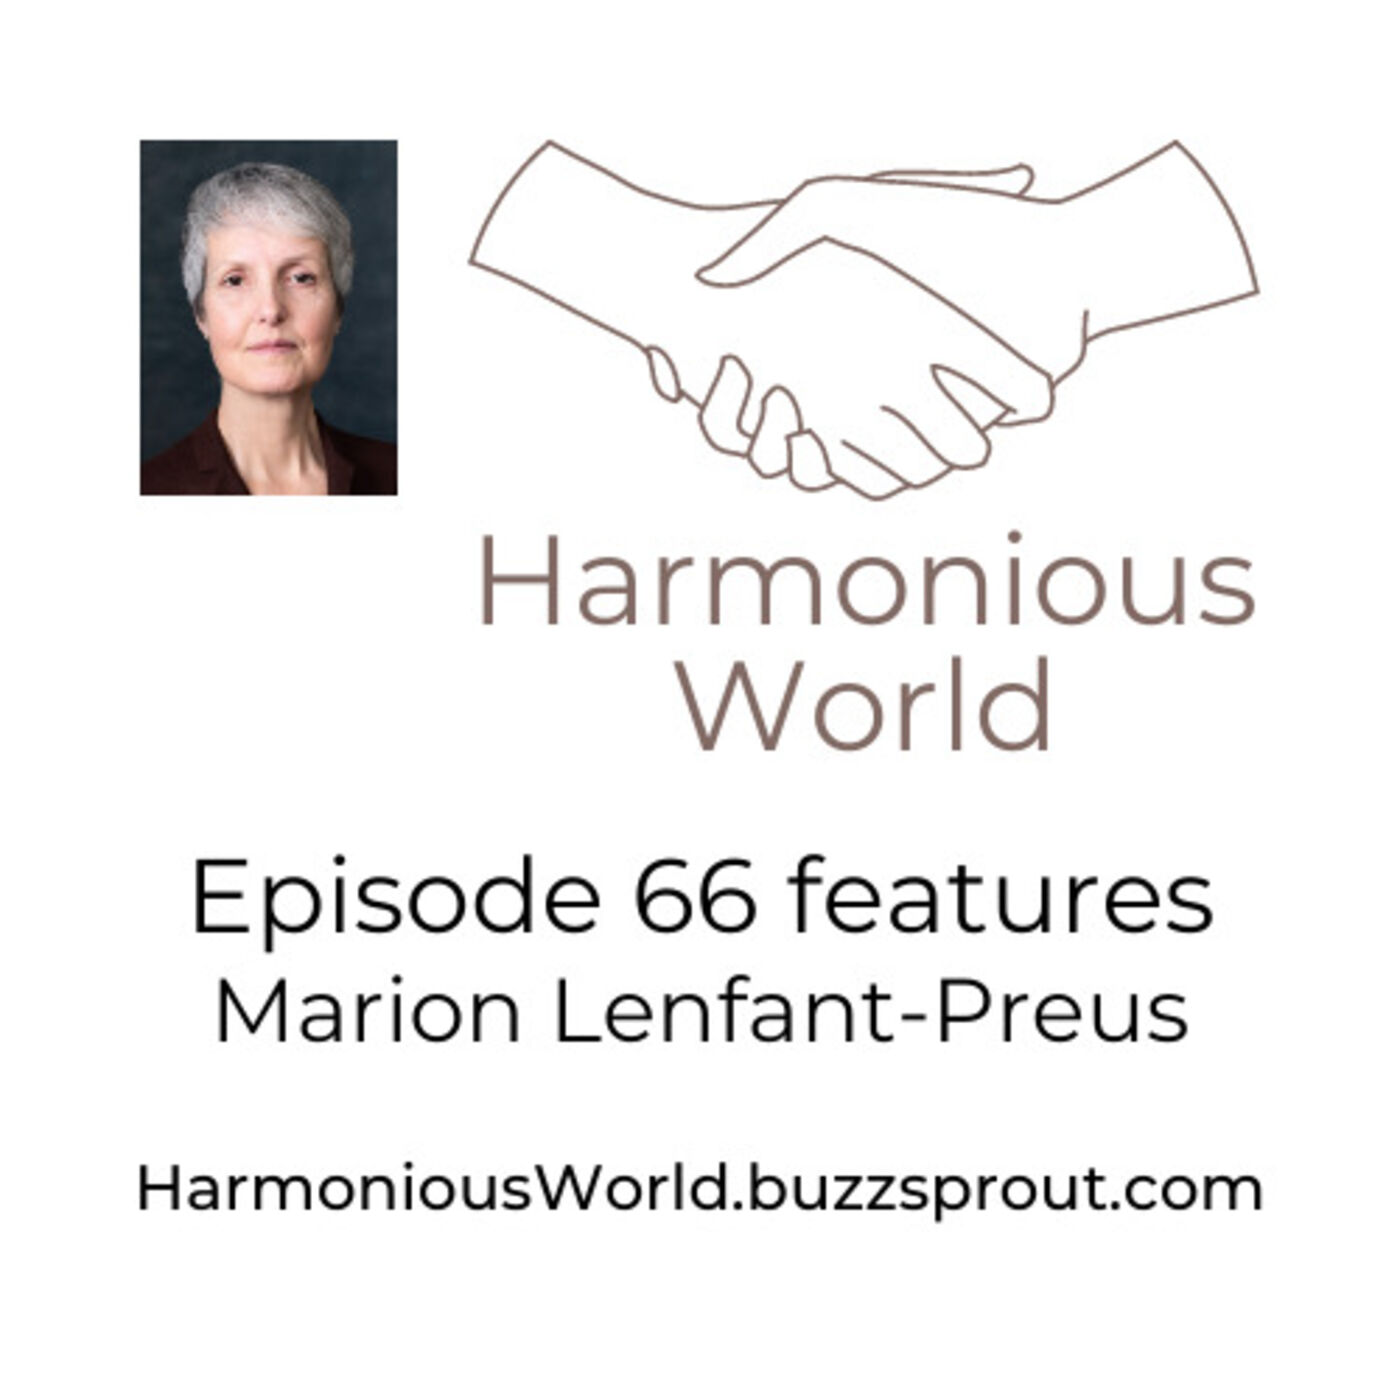 Marion Lenfant-Preus from the Marion & Sobo Band